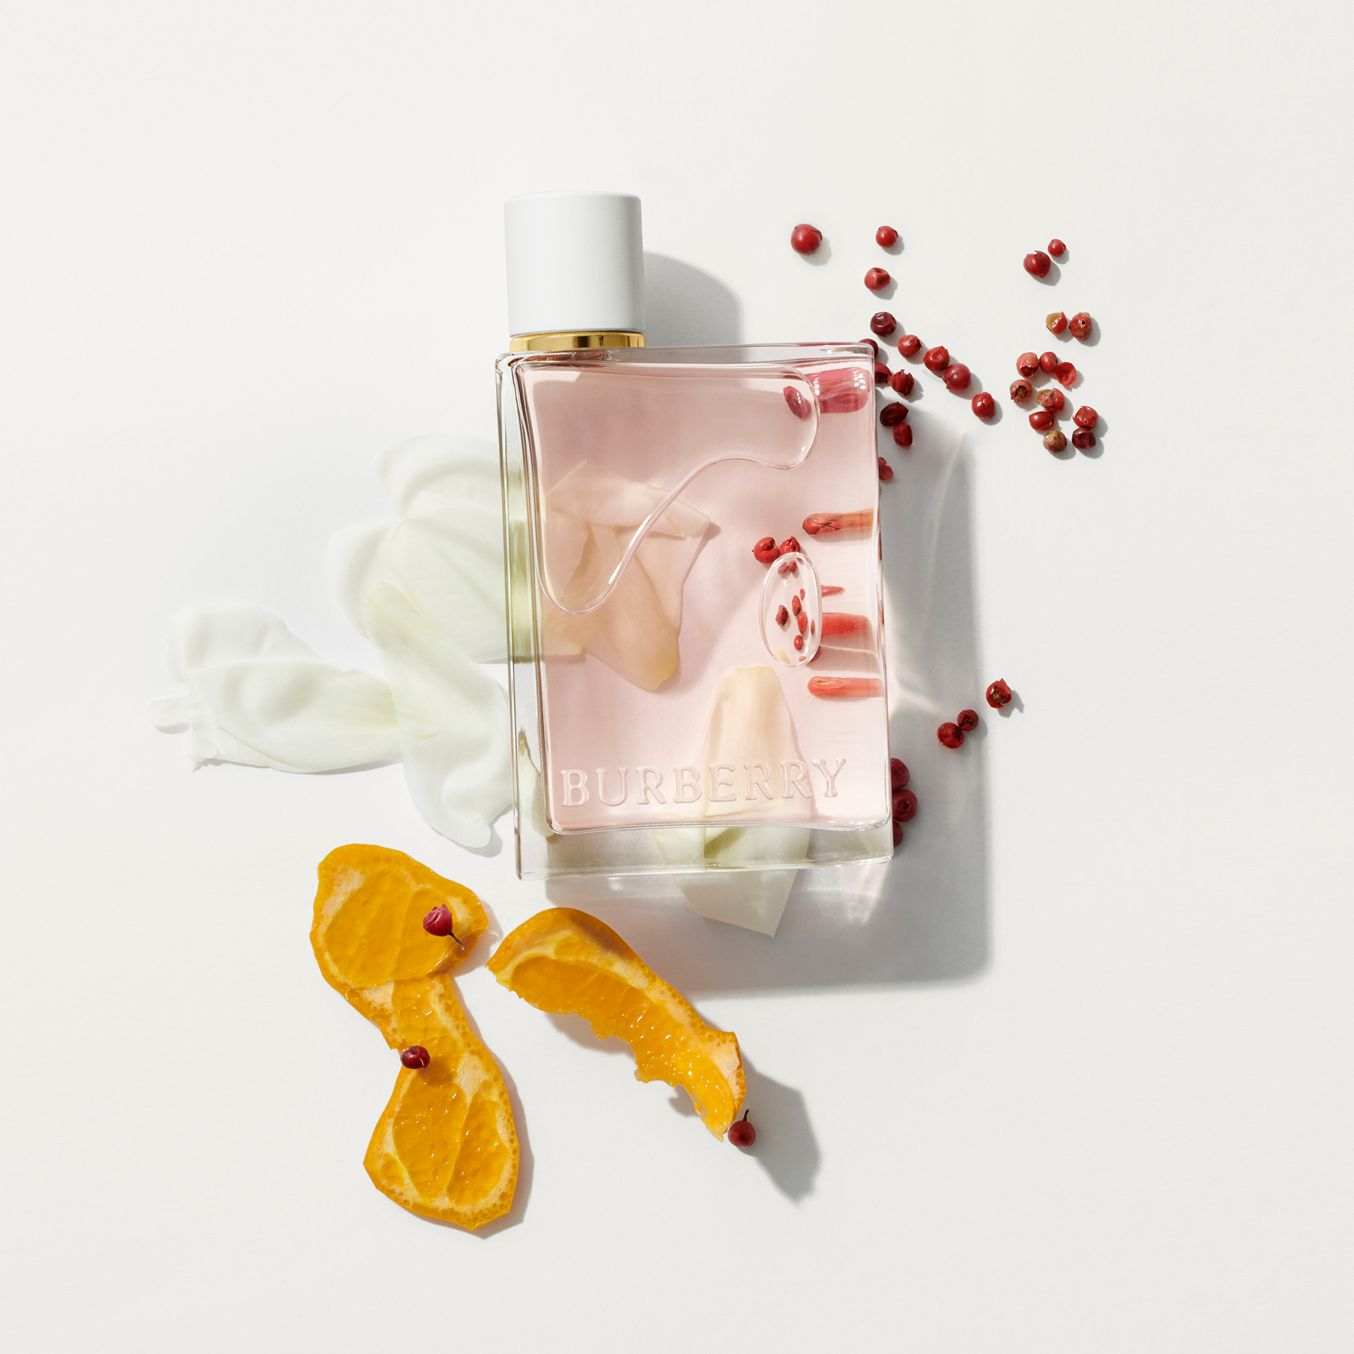 burberry her blossom ingredientes